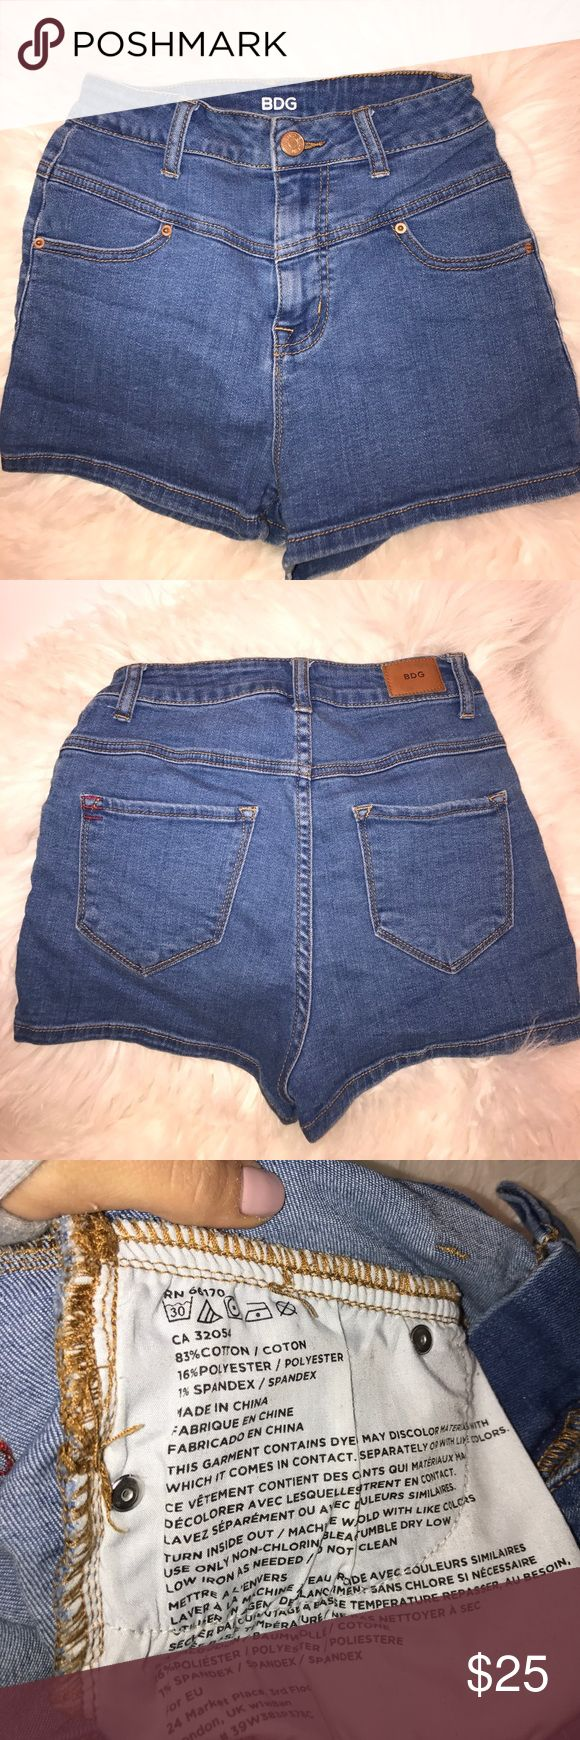 "Urban Outfitters Shorts by BDG ""Super Highrise"" Vintage inspired Shorts • High Wasted • Light Wash • Super Stretchy• Like New BDG Shorts Jean Shorts"